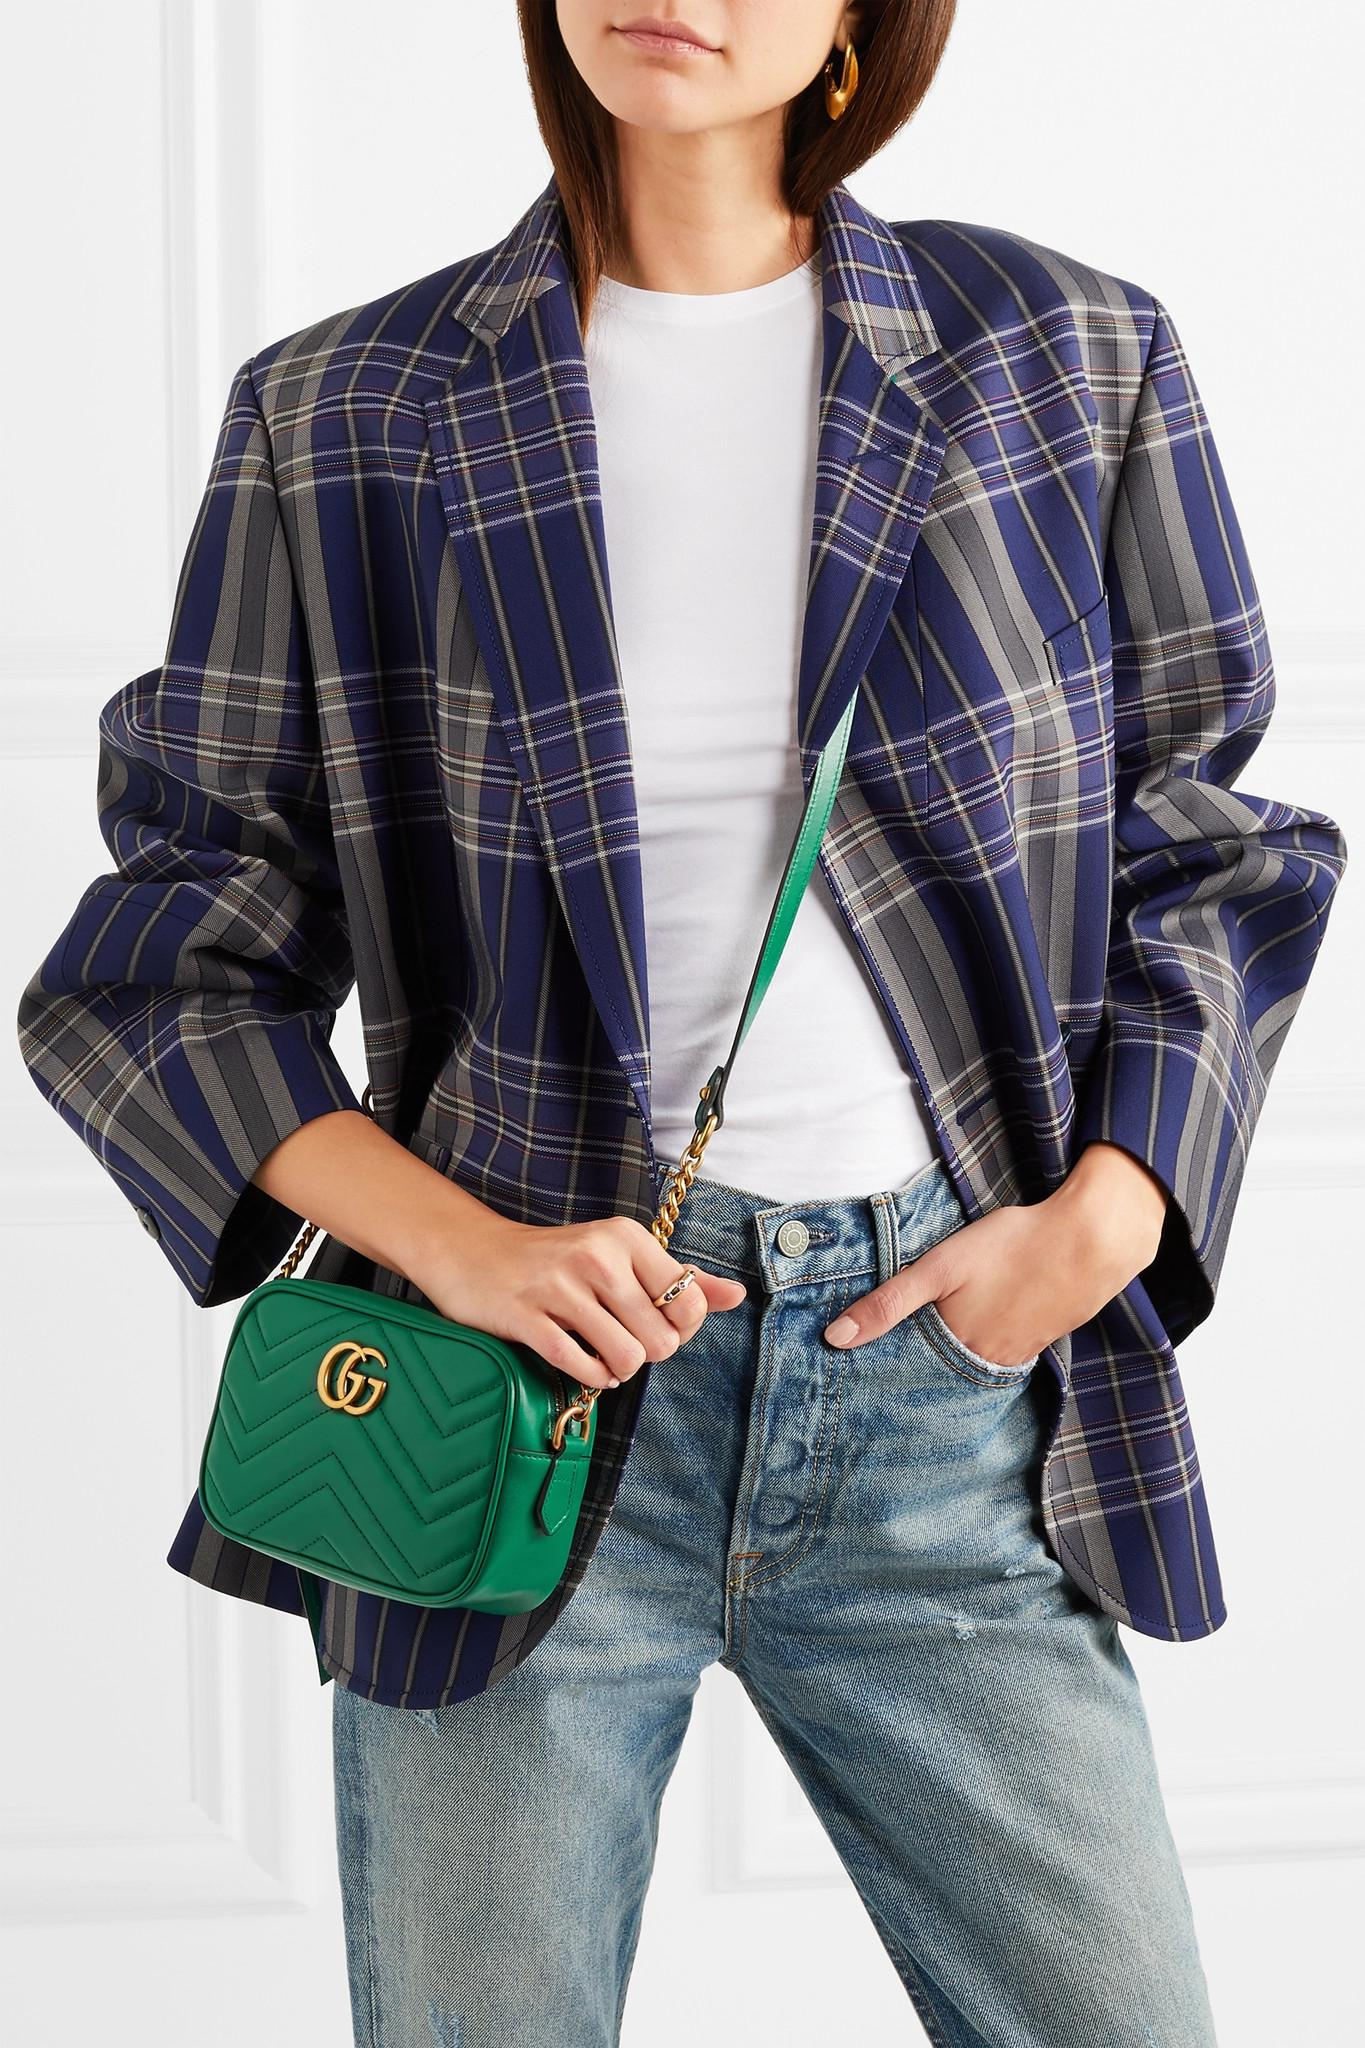 1297b438ef779d Gucci Gg Marmont Camera Mini Quilted Leather Shoulder Bag in Green ...